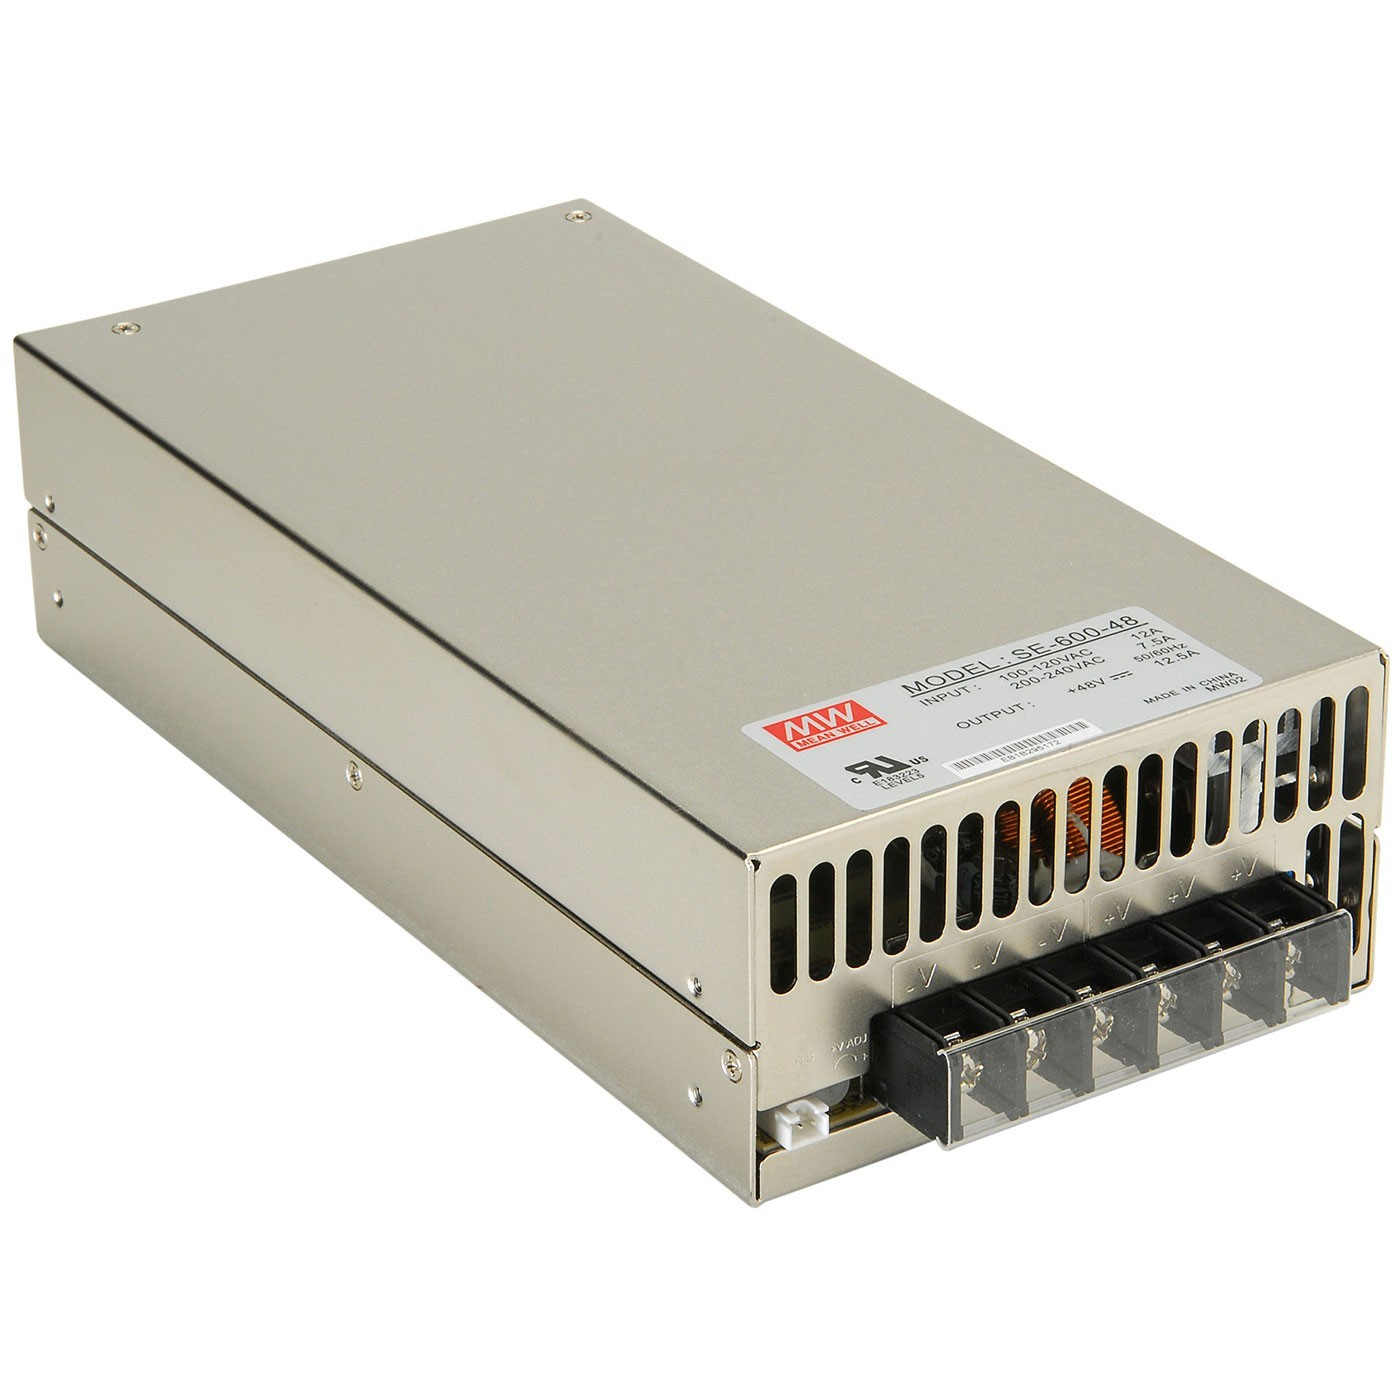 MEAN WELL MW SE-600-48 Switching Power Supply SMPS 600W 48V 12.5A